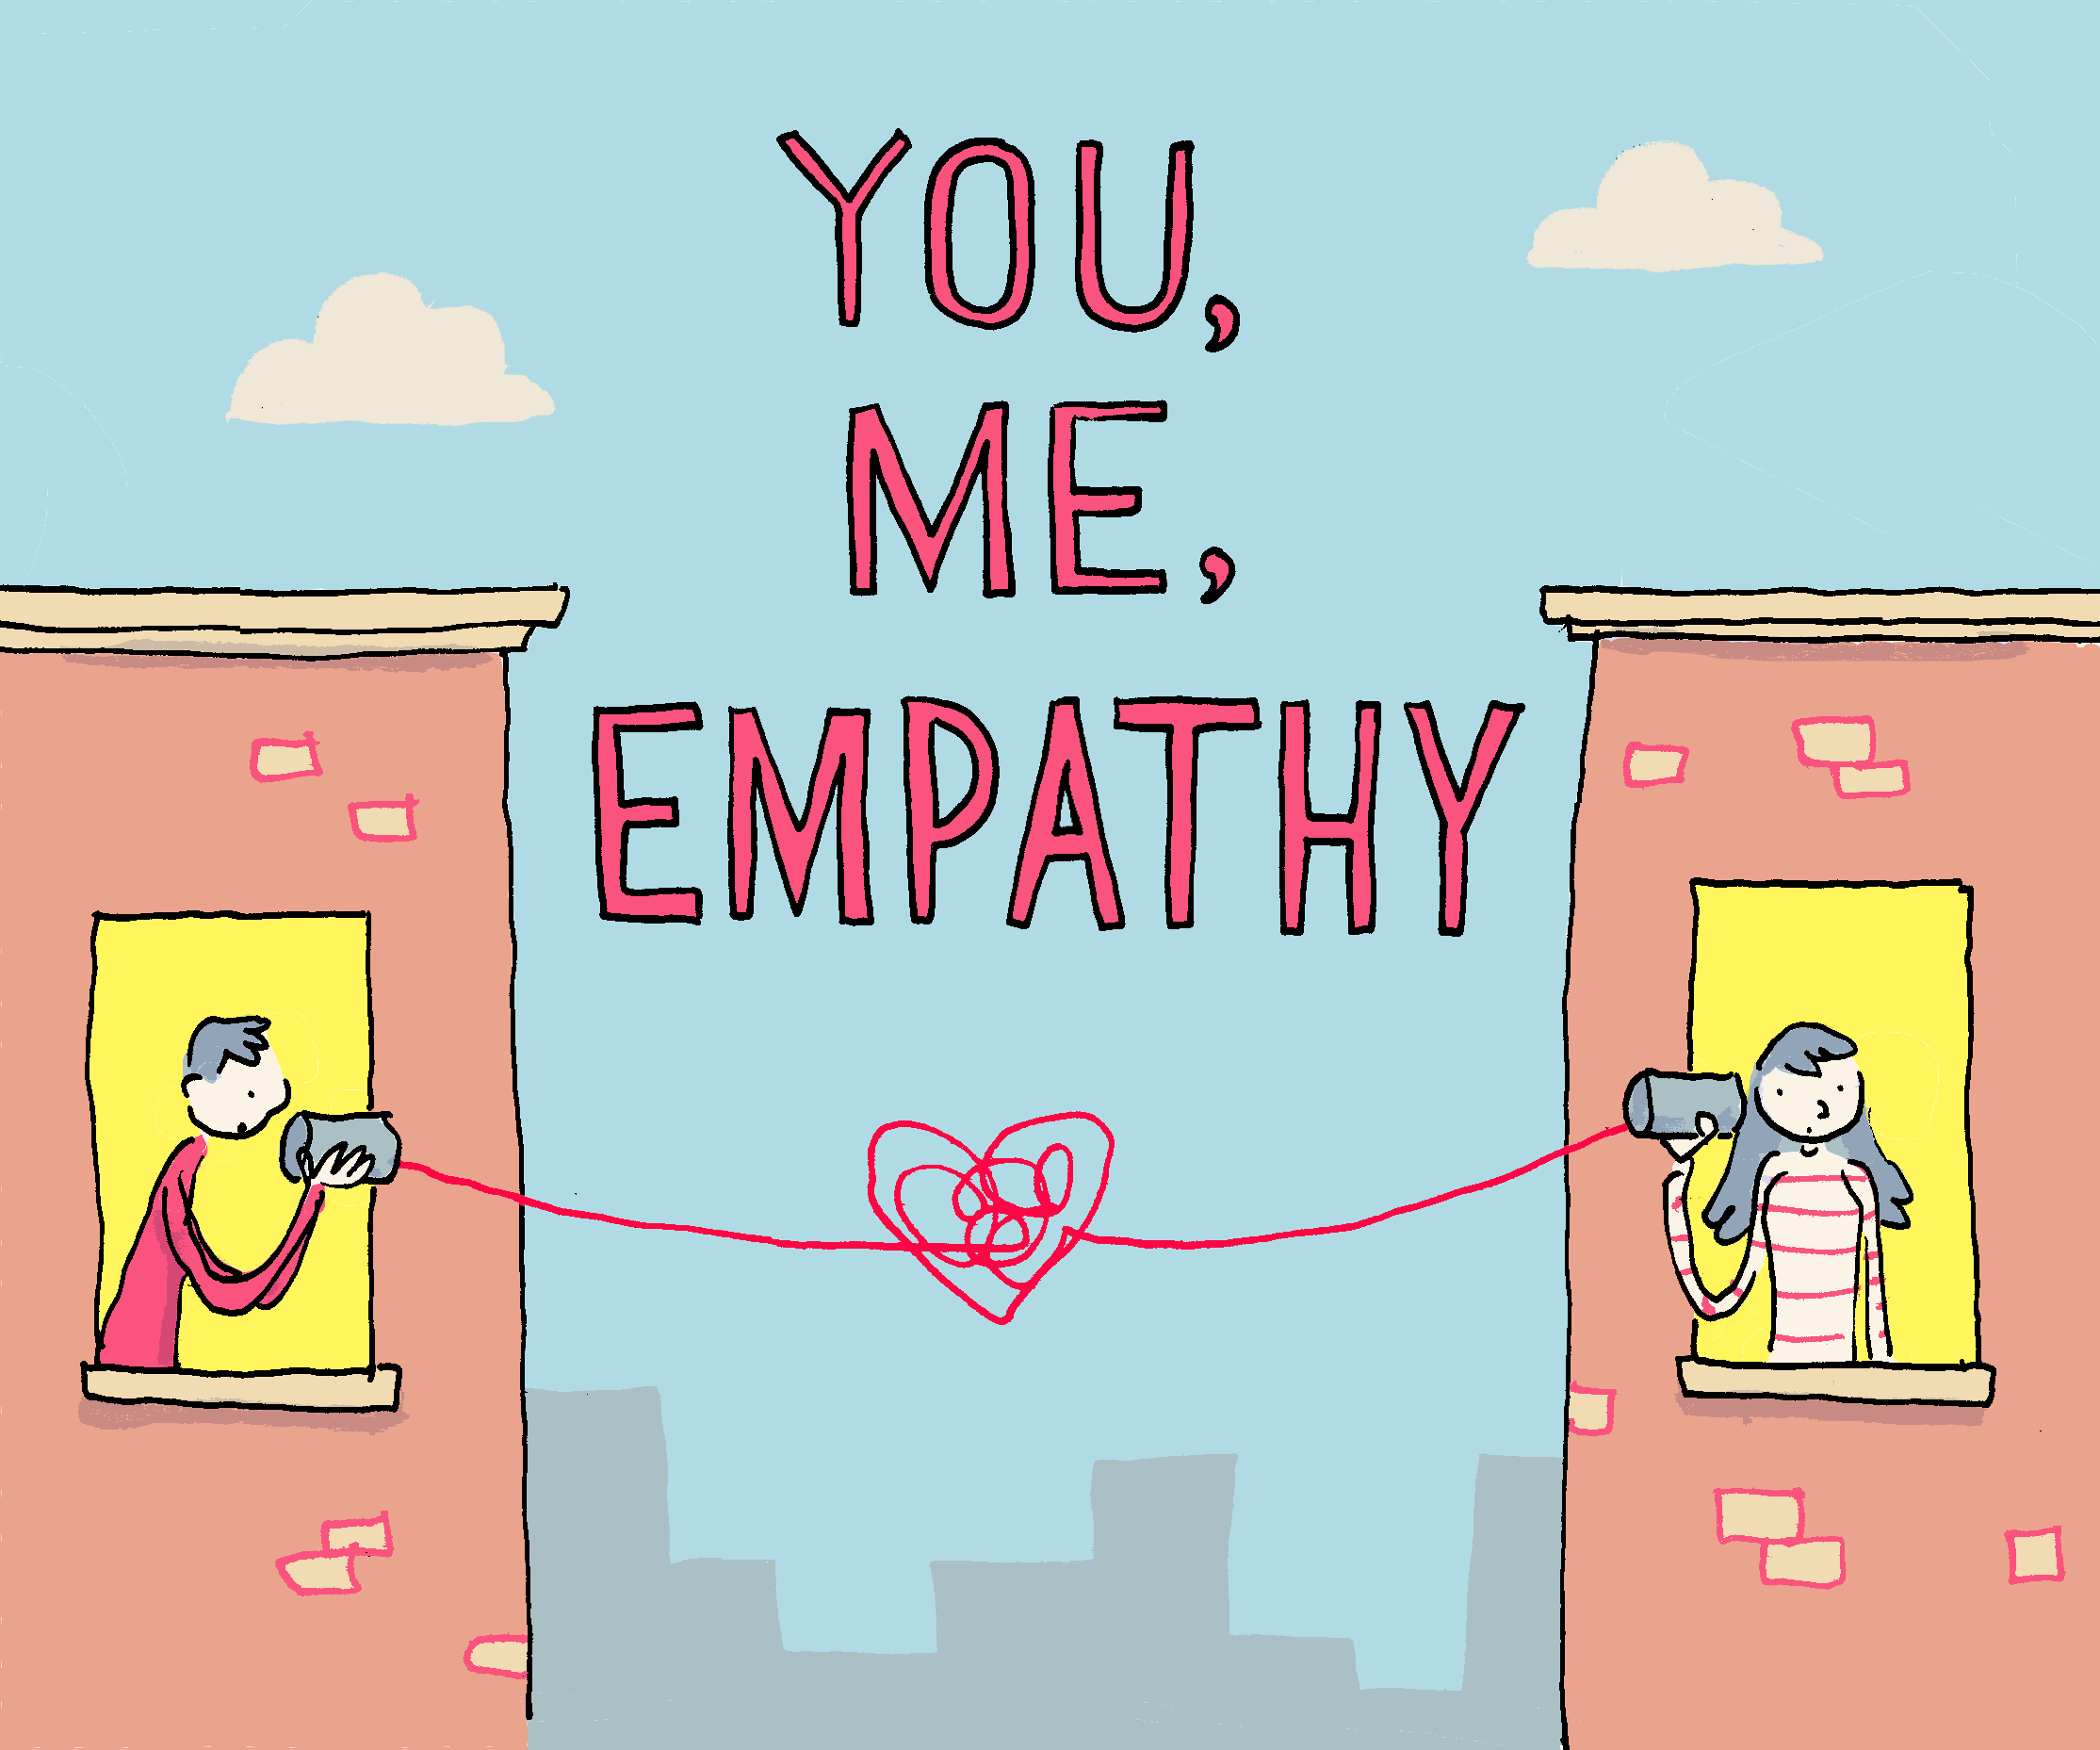 You, Me, Empathy logo designed by Grant Snider of IncidentalComics.com